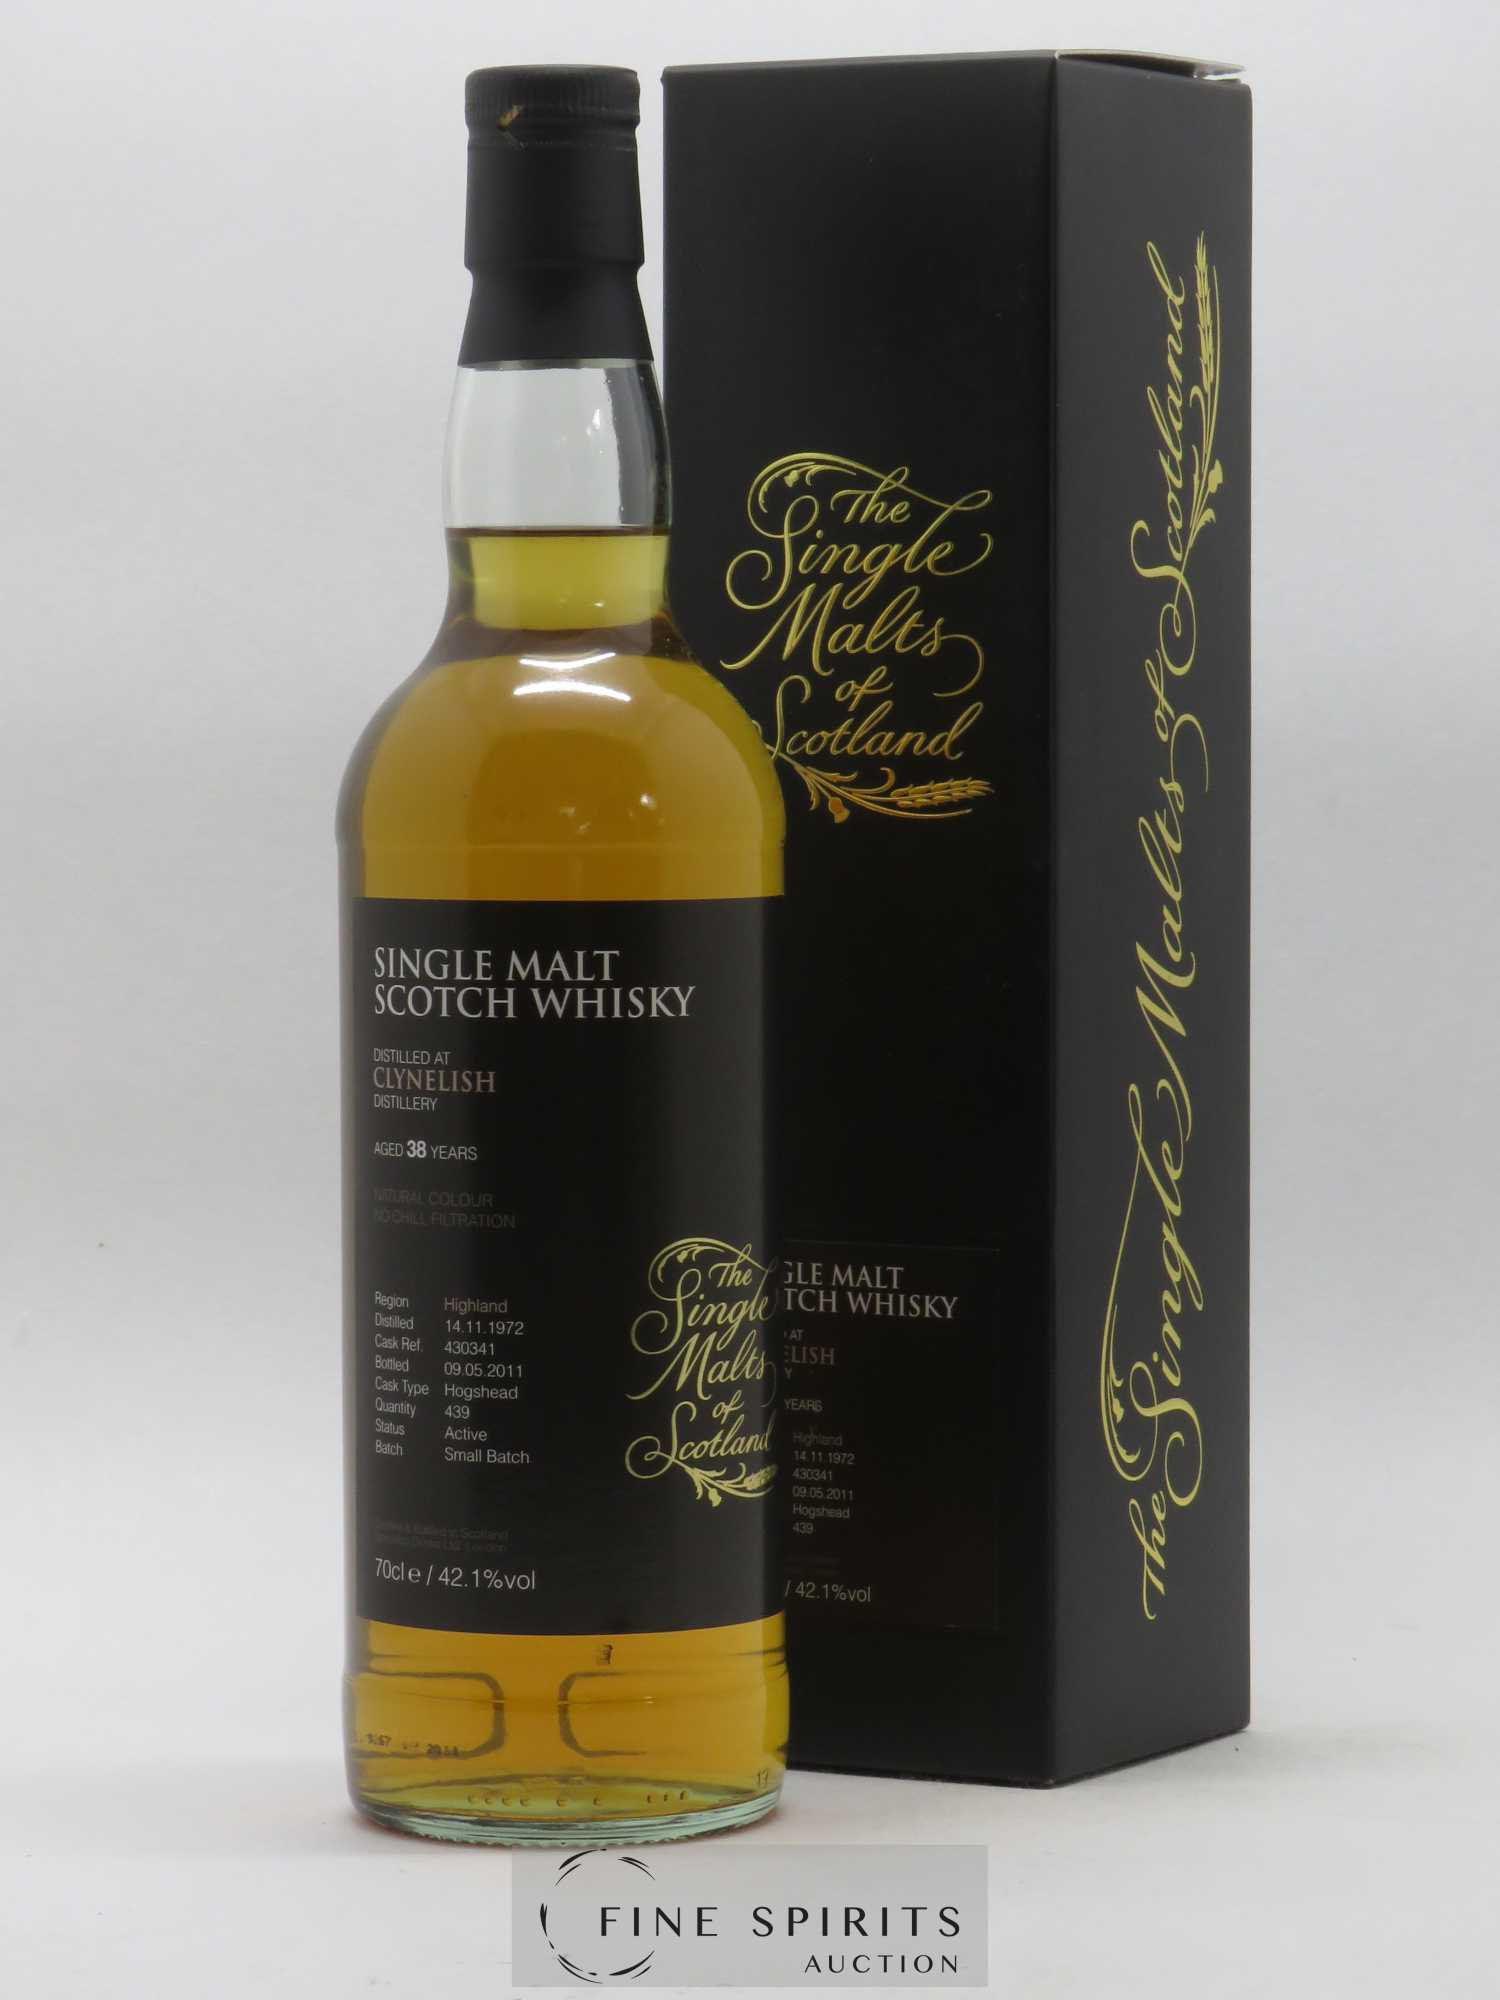 Clynelish 38 years 1972 Speciality Drinks Hogshead n°430341 - 2011 Release The Single Malts of Scotland   - Lot de 1 Bouteille